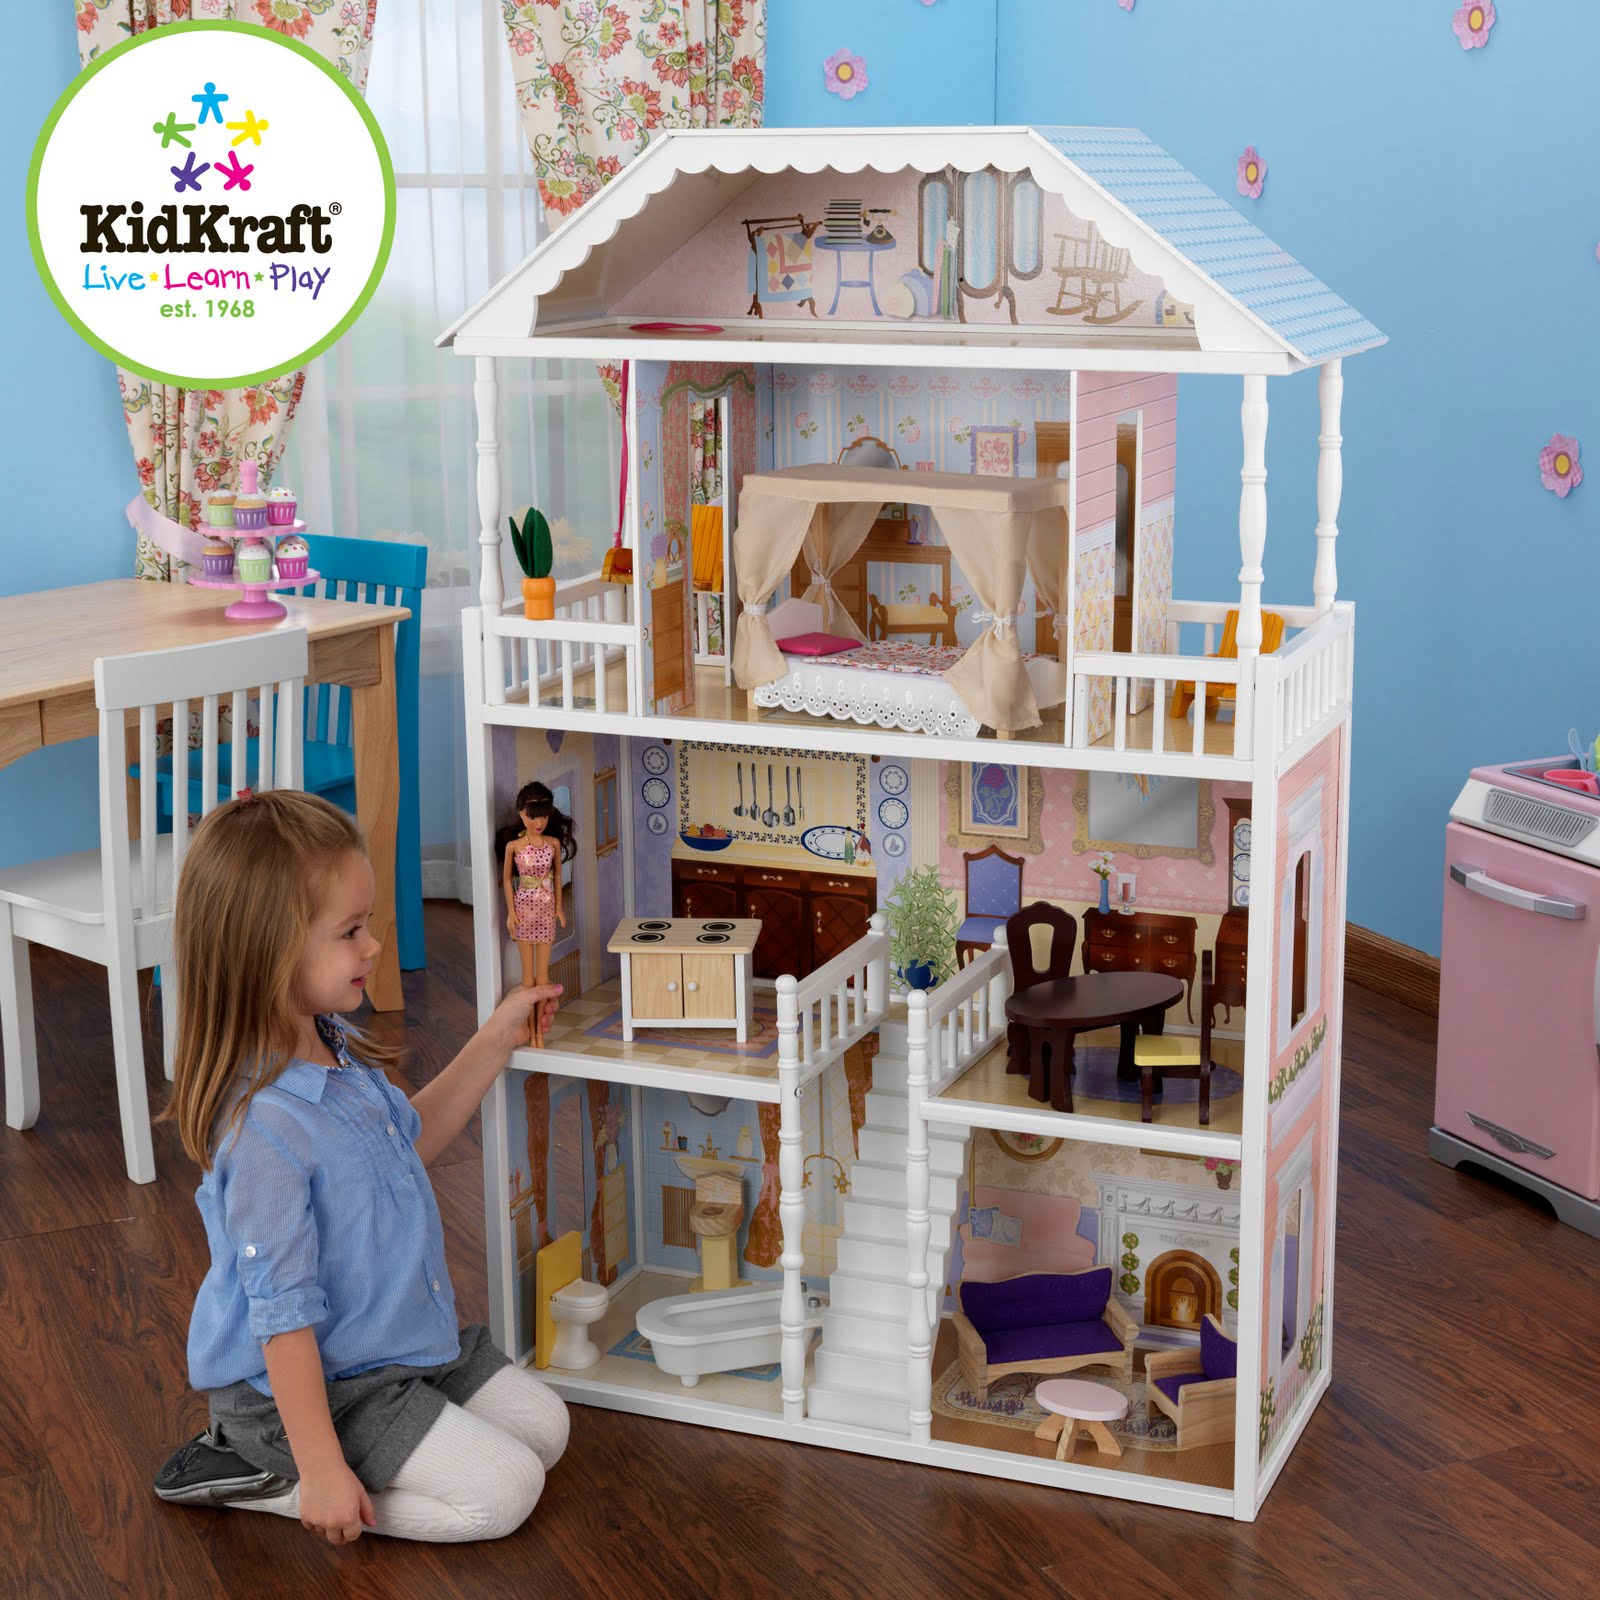 Kidkraft Toys Furniture Savannah Dollhouse Voted One Of The Top 10 Dollhouses For Play By